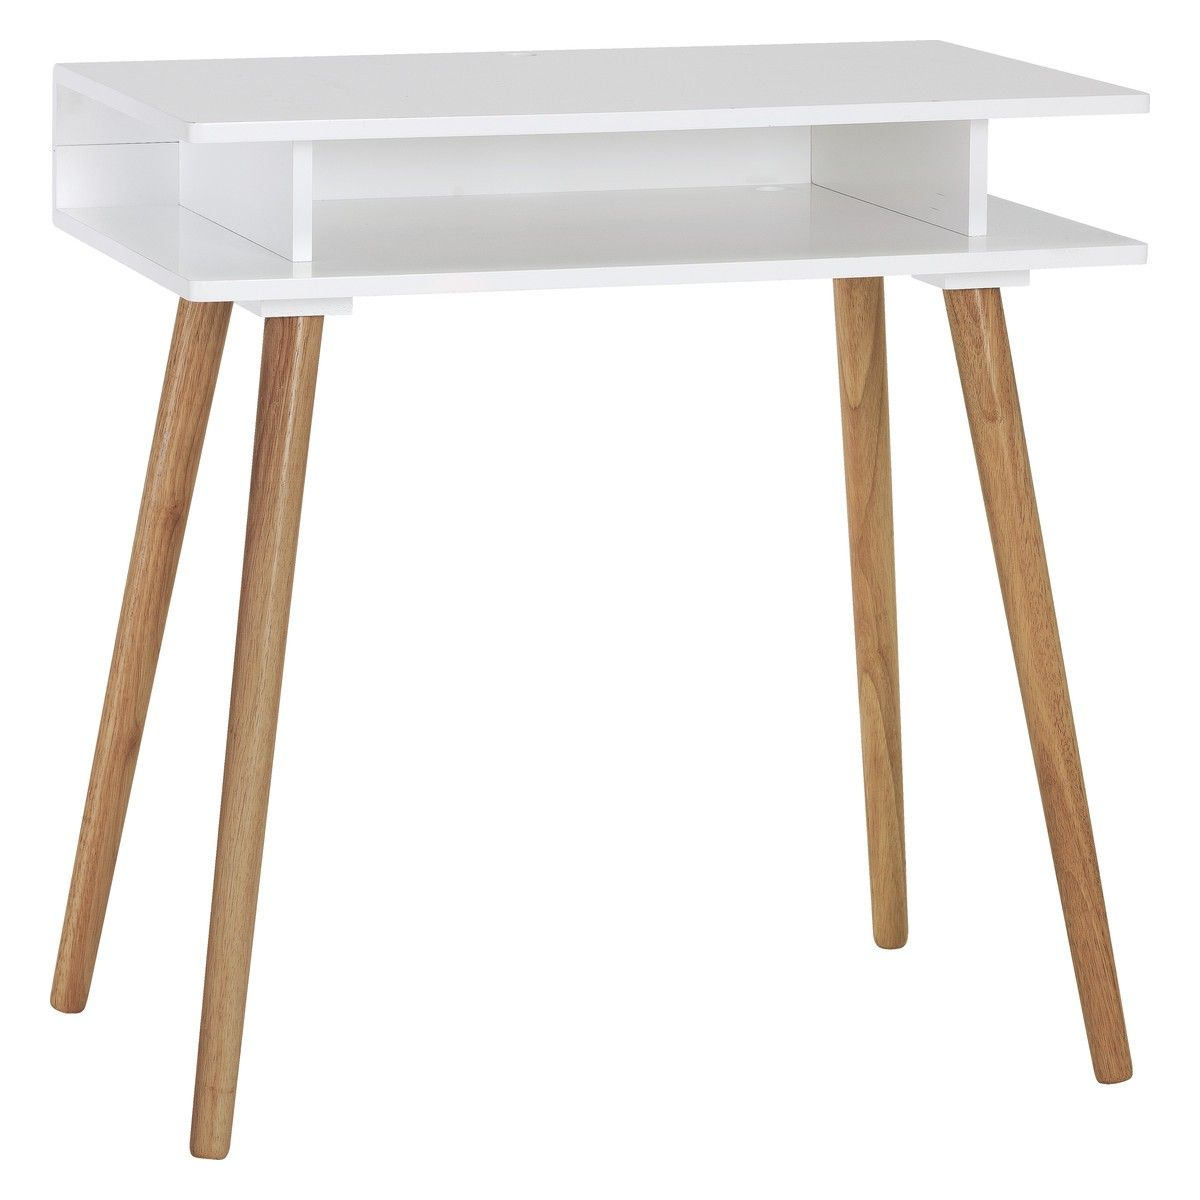 Captivating 125GBP 75x45x77H CATO White Desk